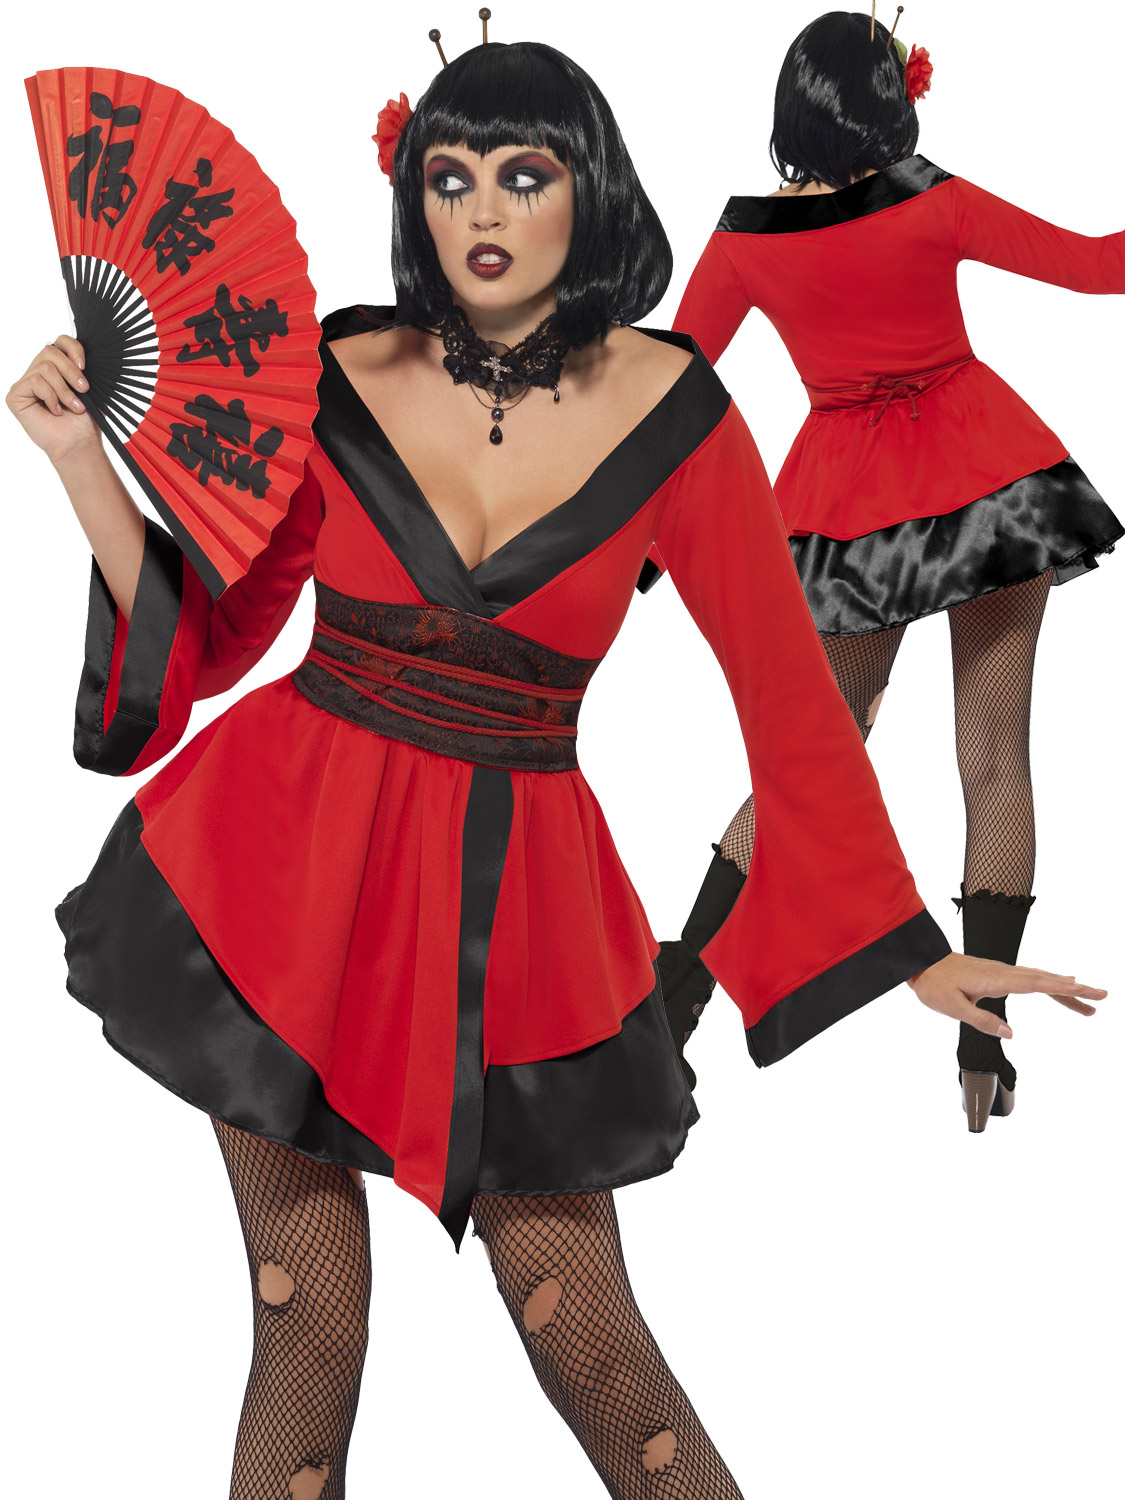 Pity, Womens costumes outfits geisha dress join. All